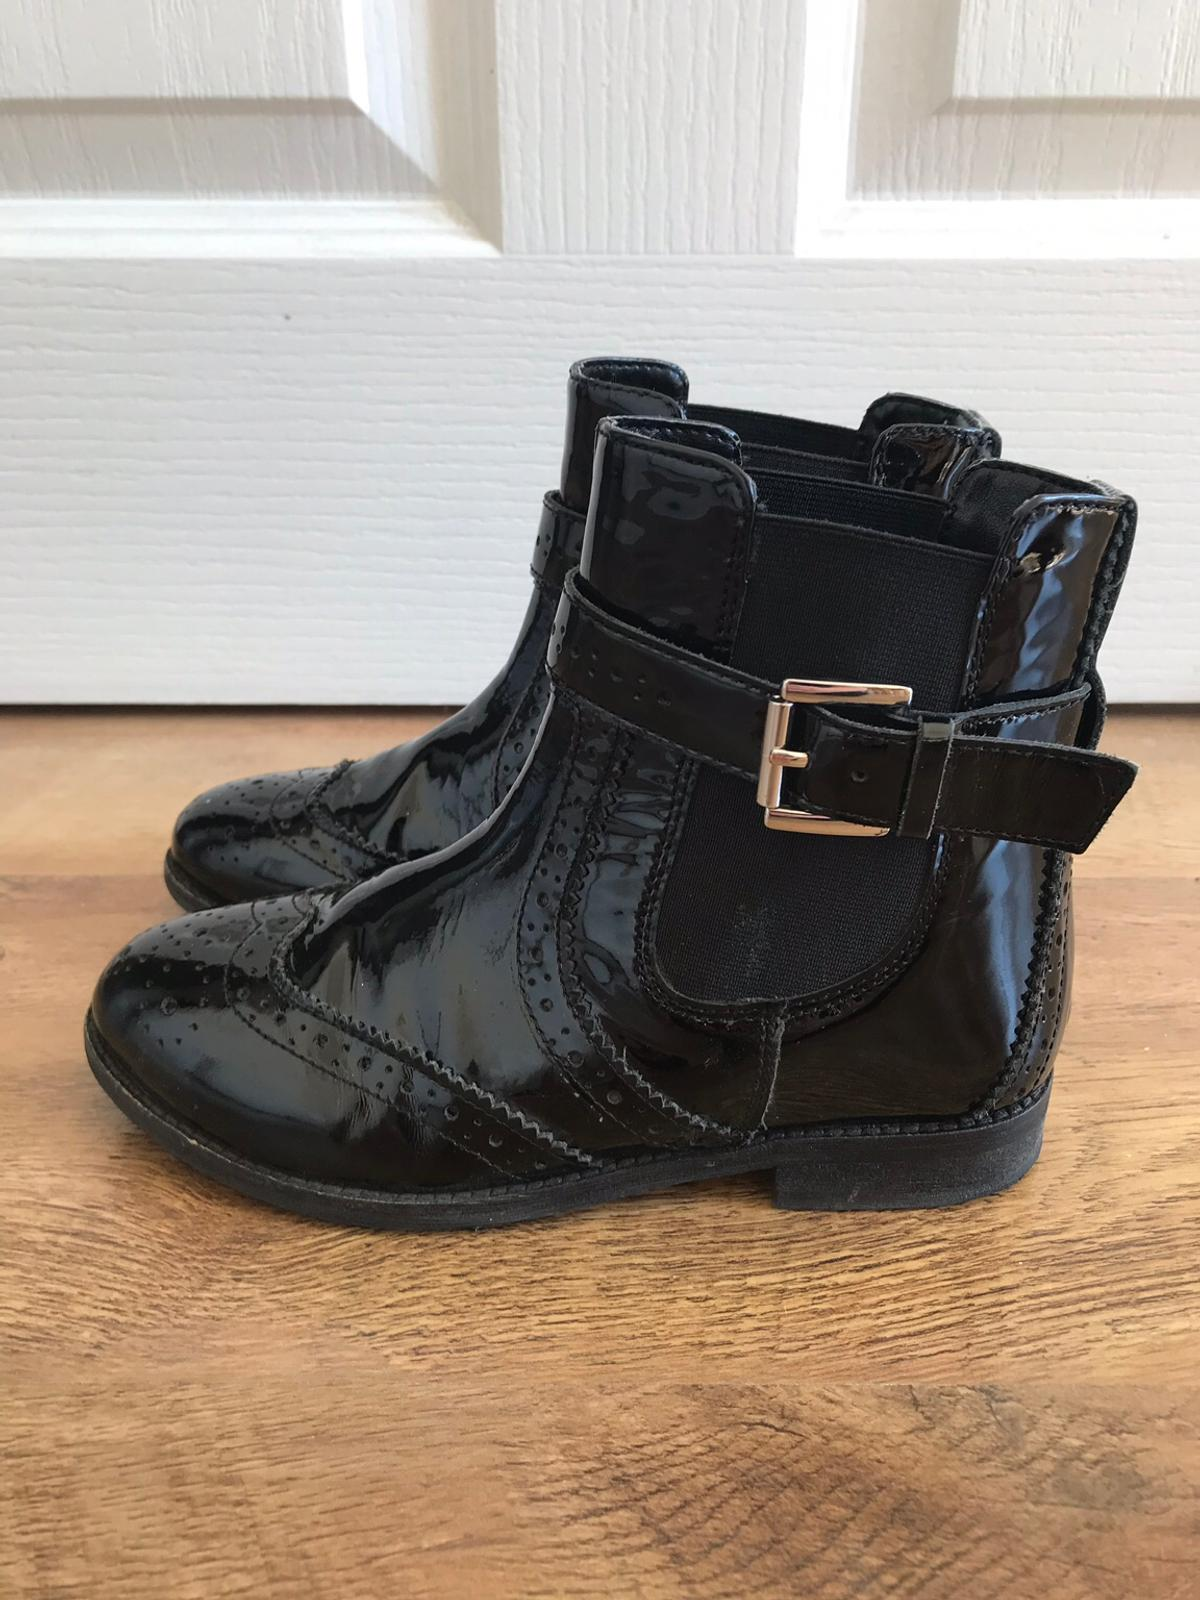 3b5bb227c Description. Mini Miss KG Kurt Geiger Girls boots. Size 13. Black patent